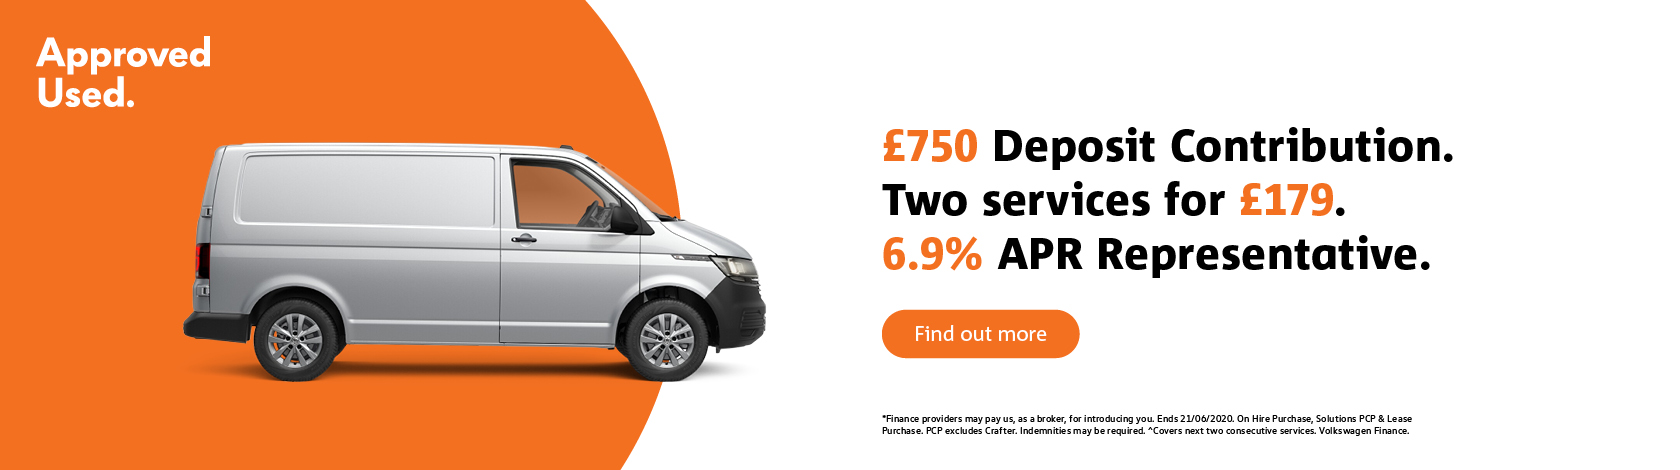 Approved Used Transporter Offer